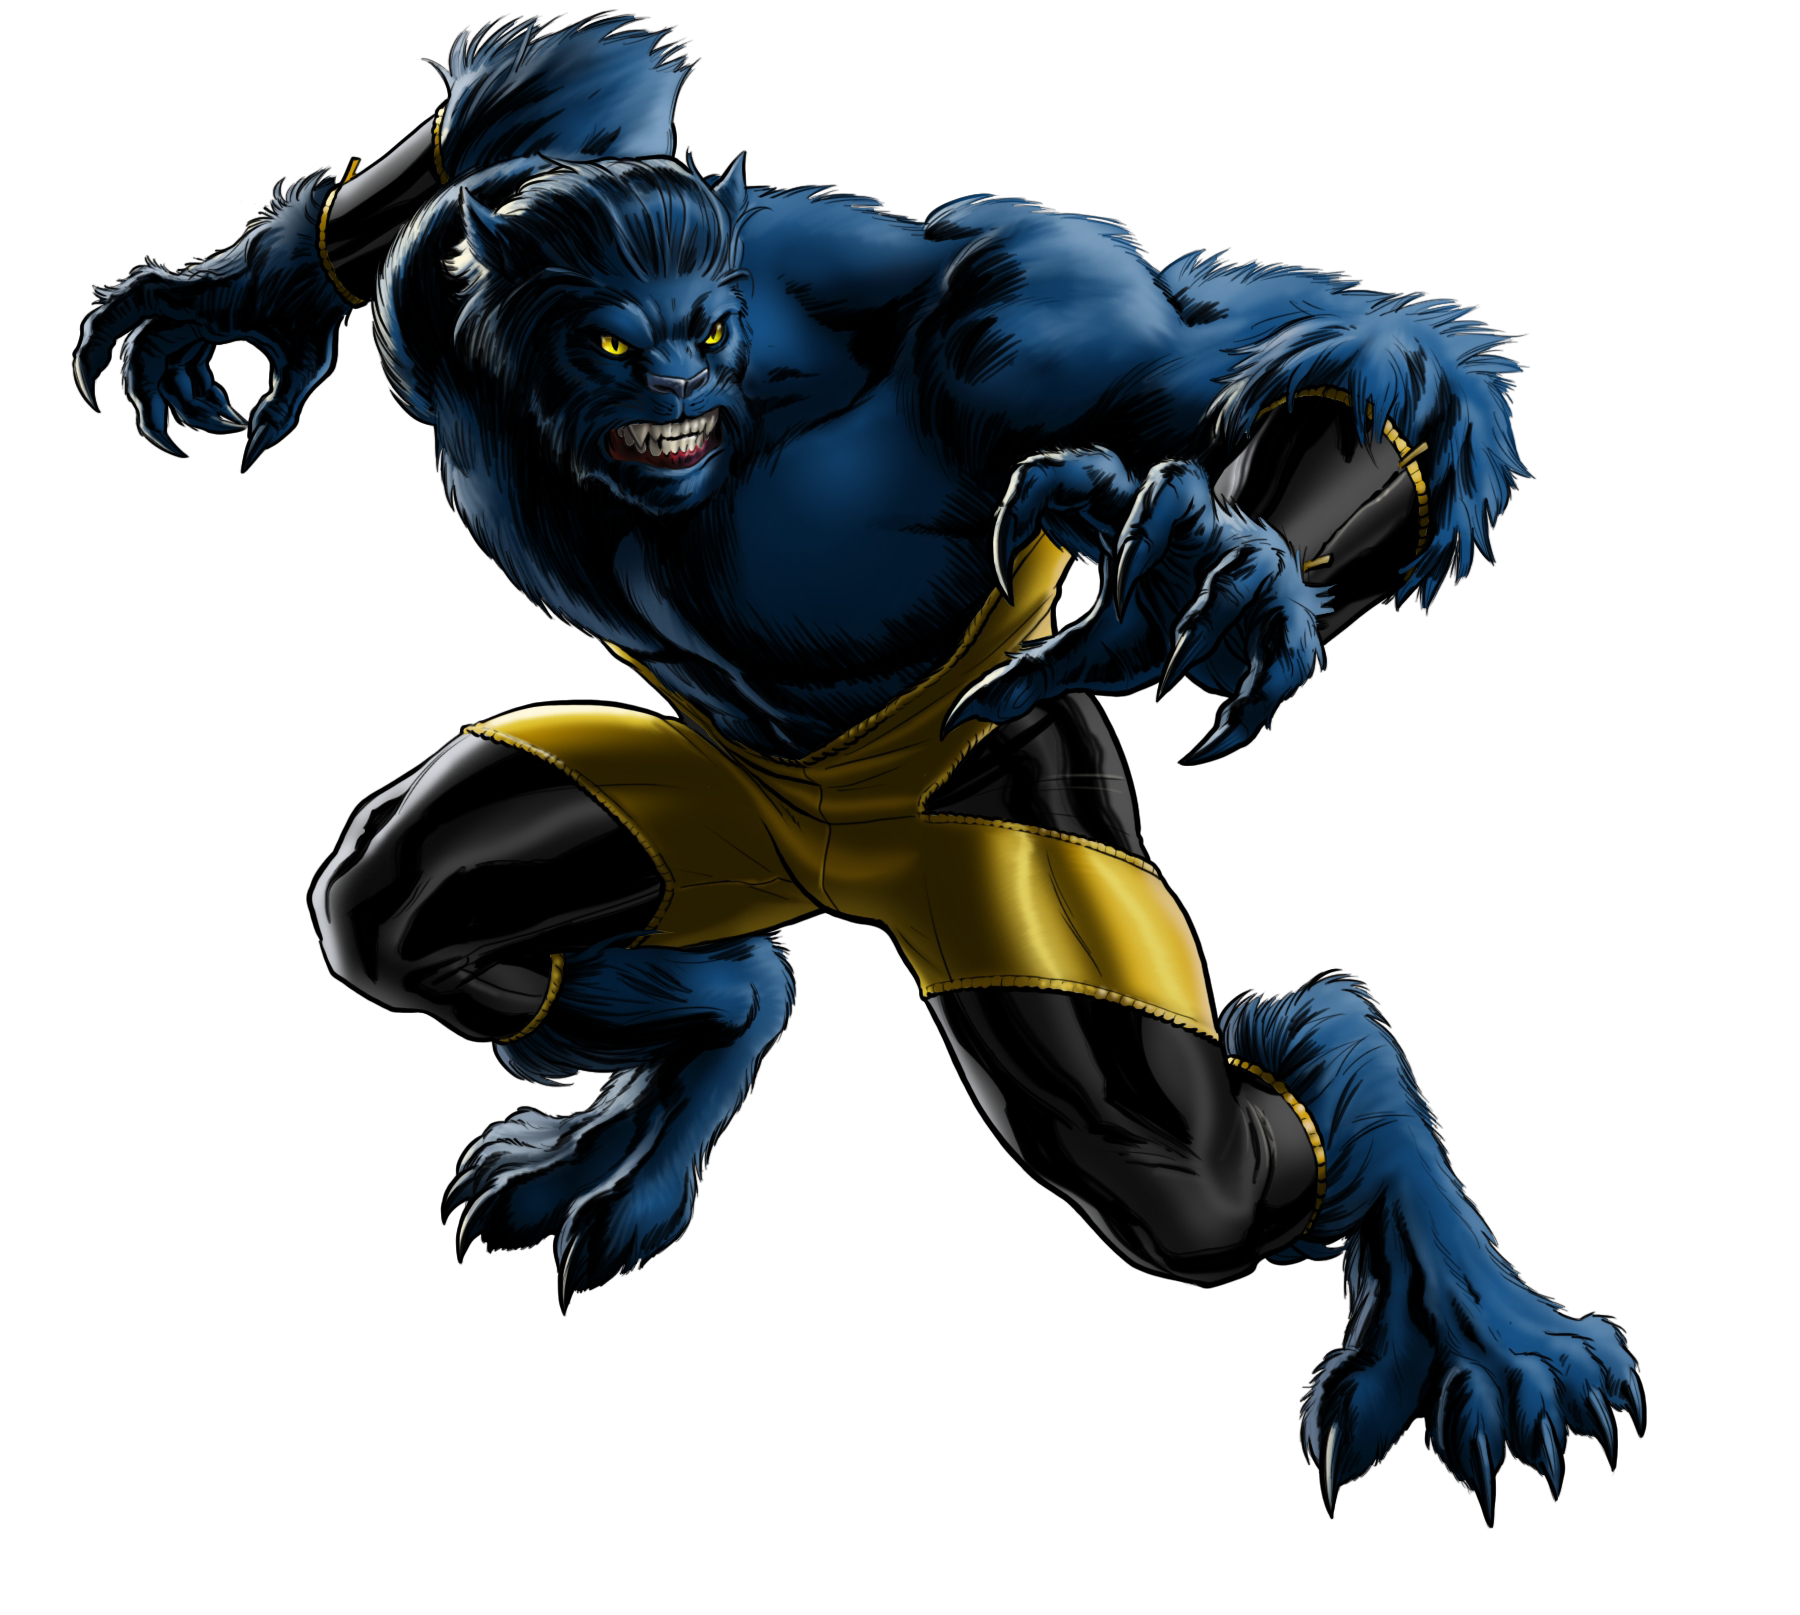 Marvel superhero clipart image free download Beast (Marvel Comics) | Death Battle Fanon Wiki | FANDOM powered by ... image free download